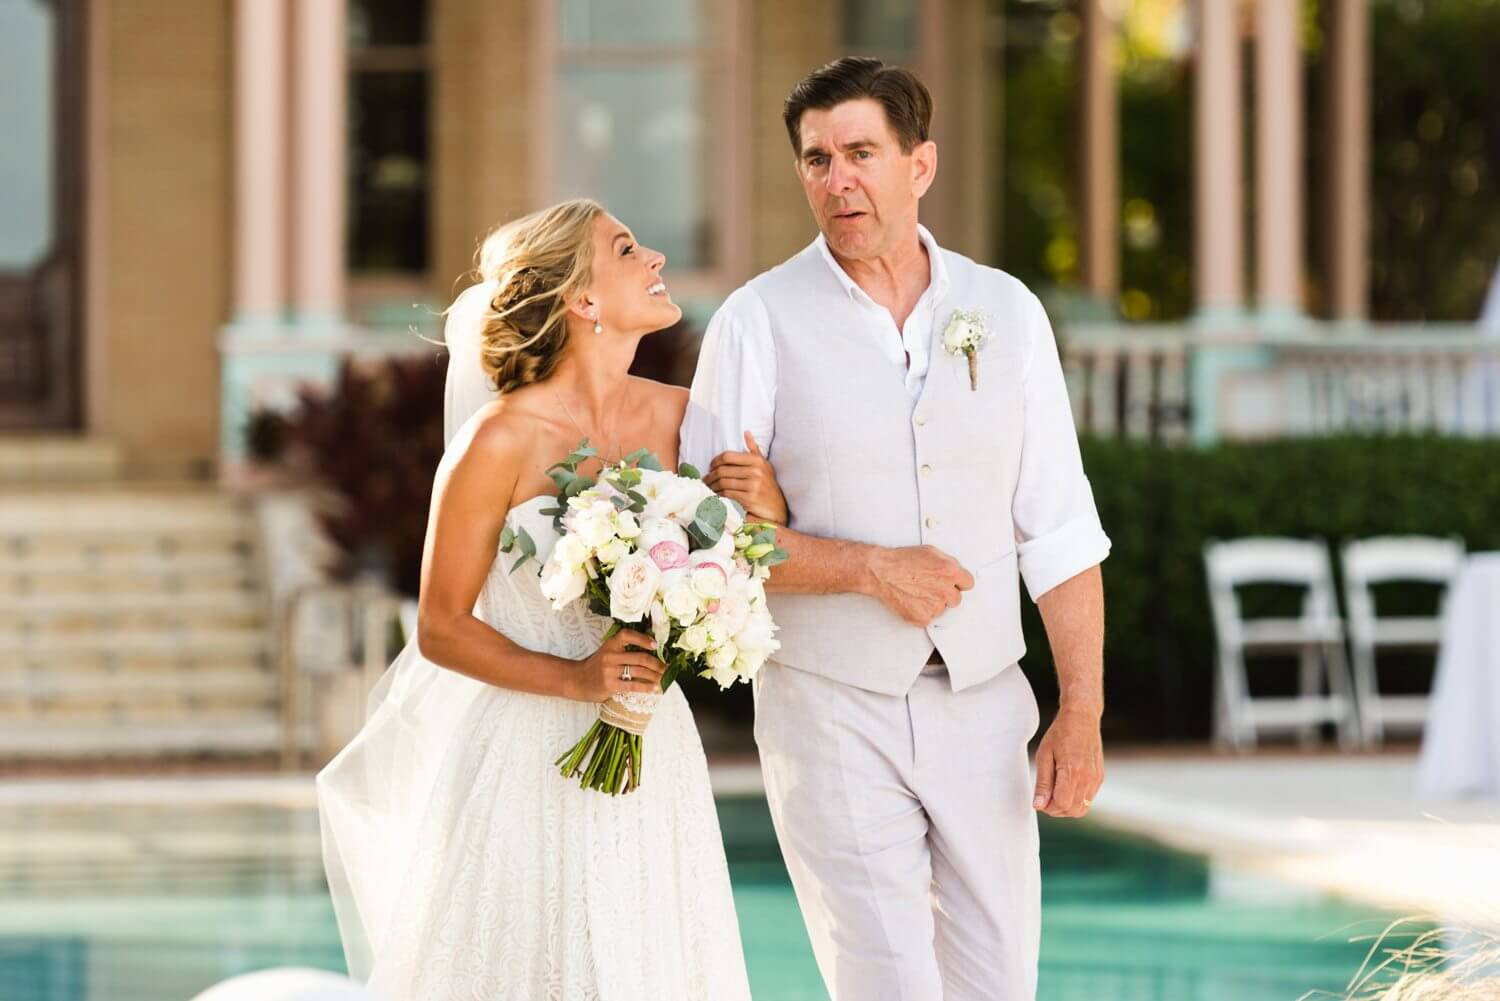 Freas Photography Southernmost House Wedding 91 - Boho Styled Key West Wedding at the Southernmost House in Key West, Florida